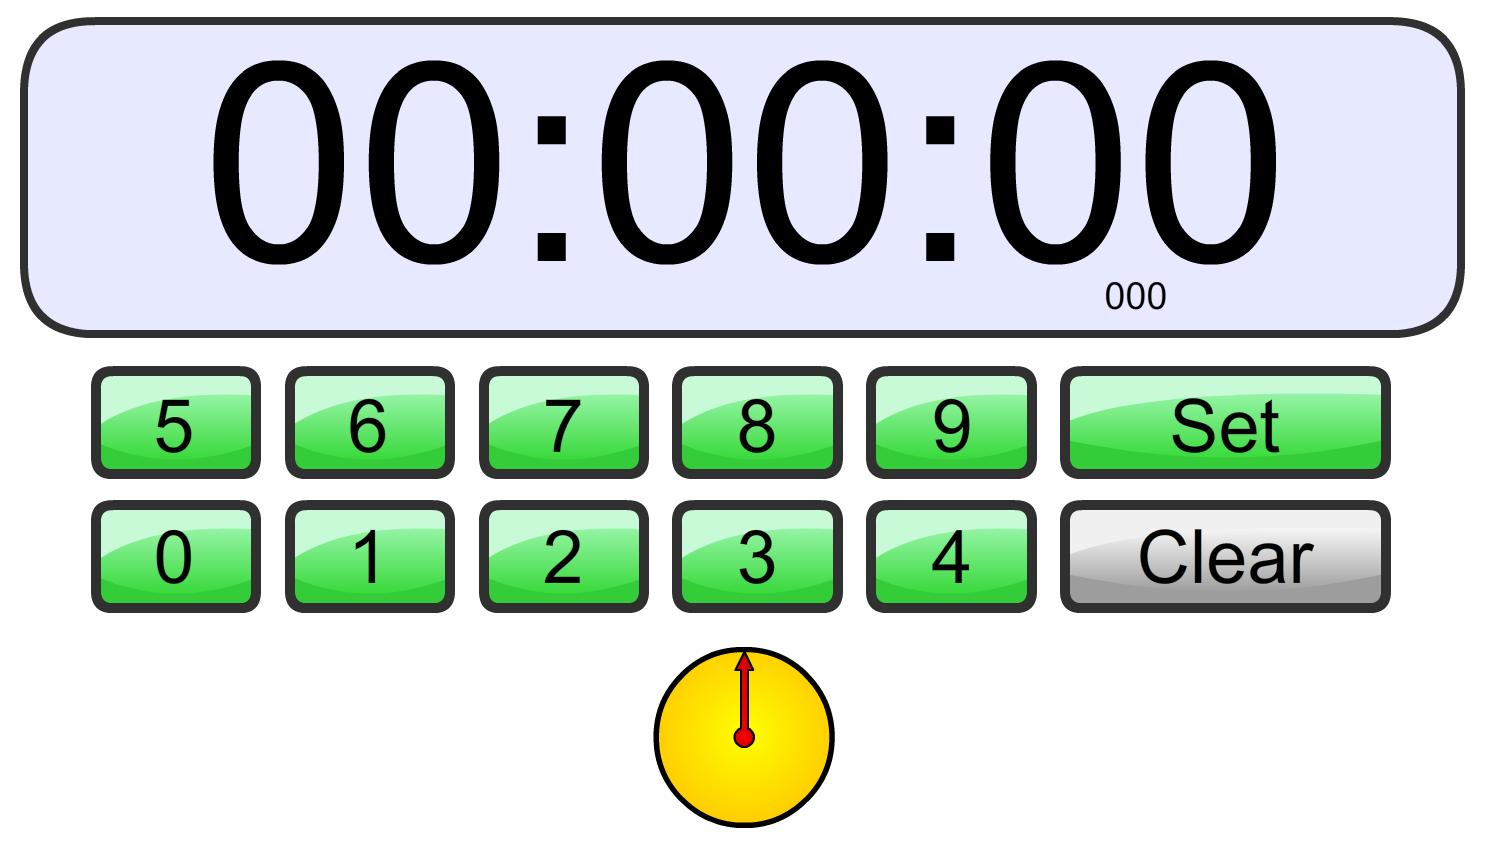 Once the time on the stopwatch